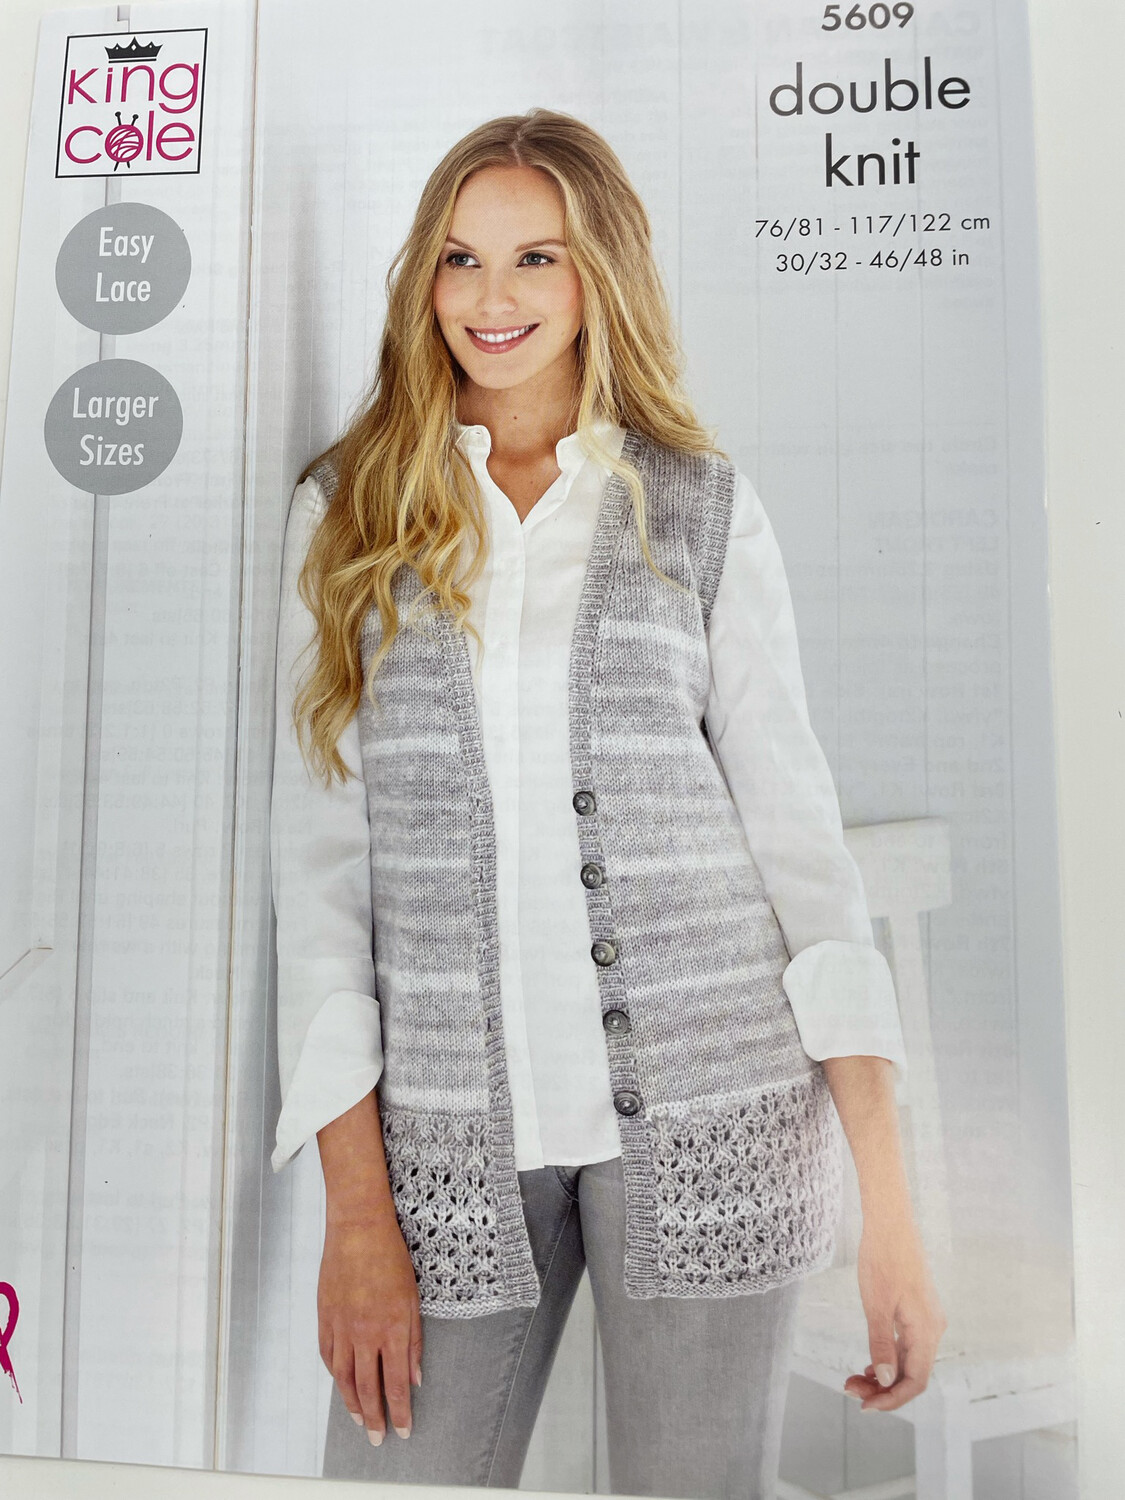 King Cole Waistcoat and Cardigan Double Knit - Women's Pattern 5609